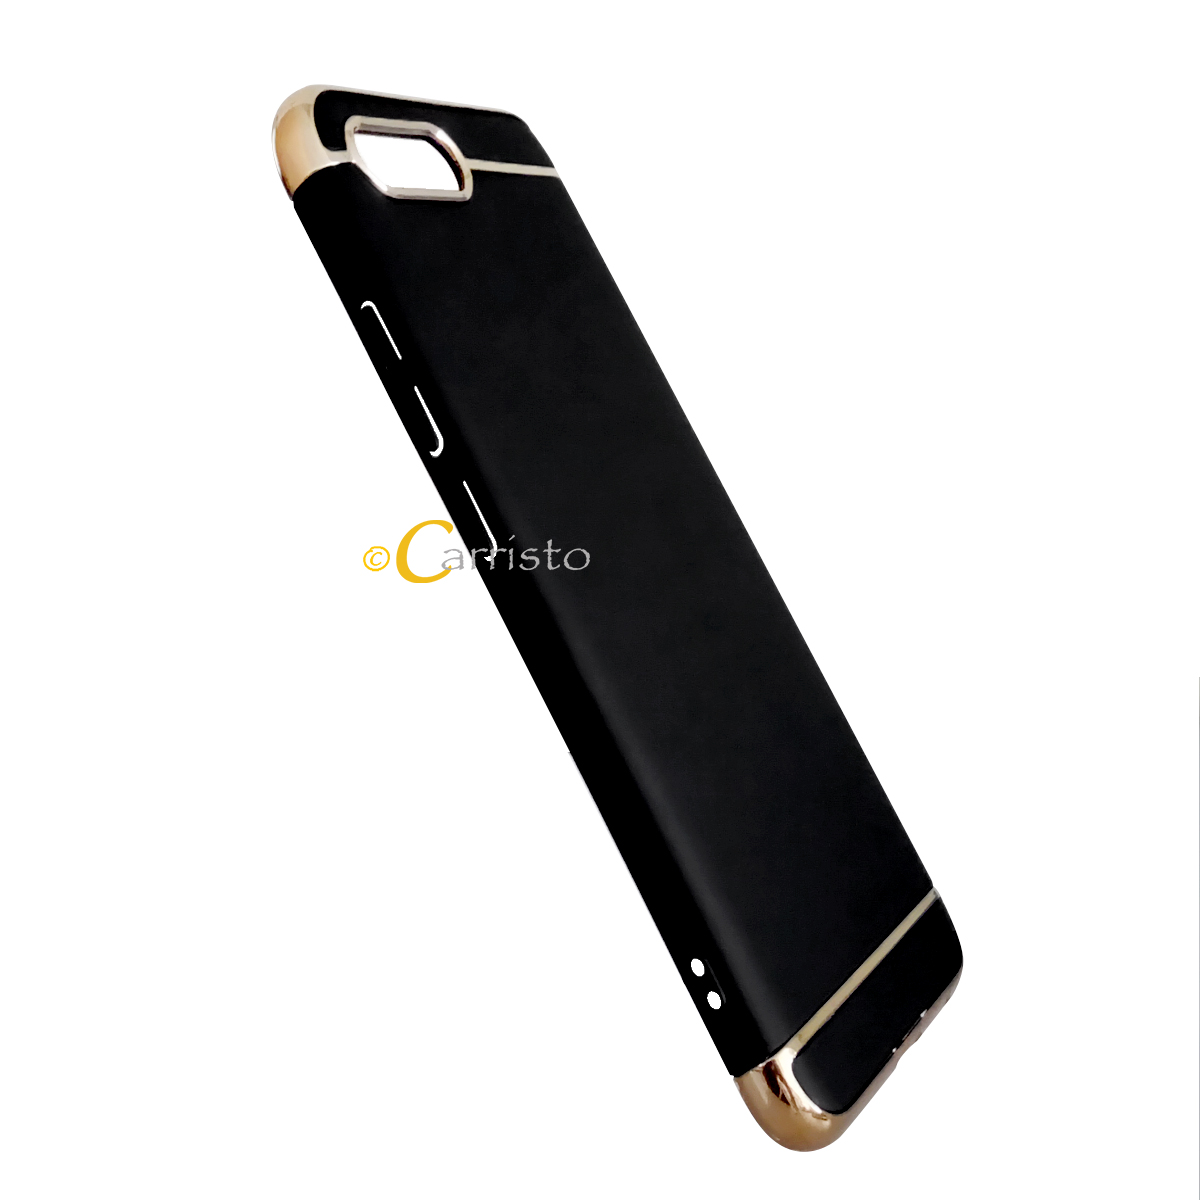 Huawei Honor 7S Honor 8X Honor Play Y9 2019 Y5 2018 Case Cover Casing  Housing